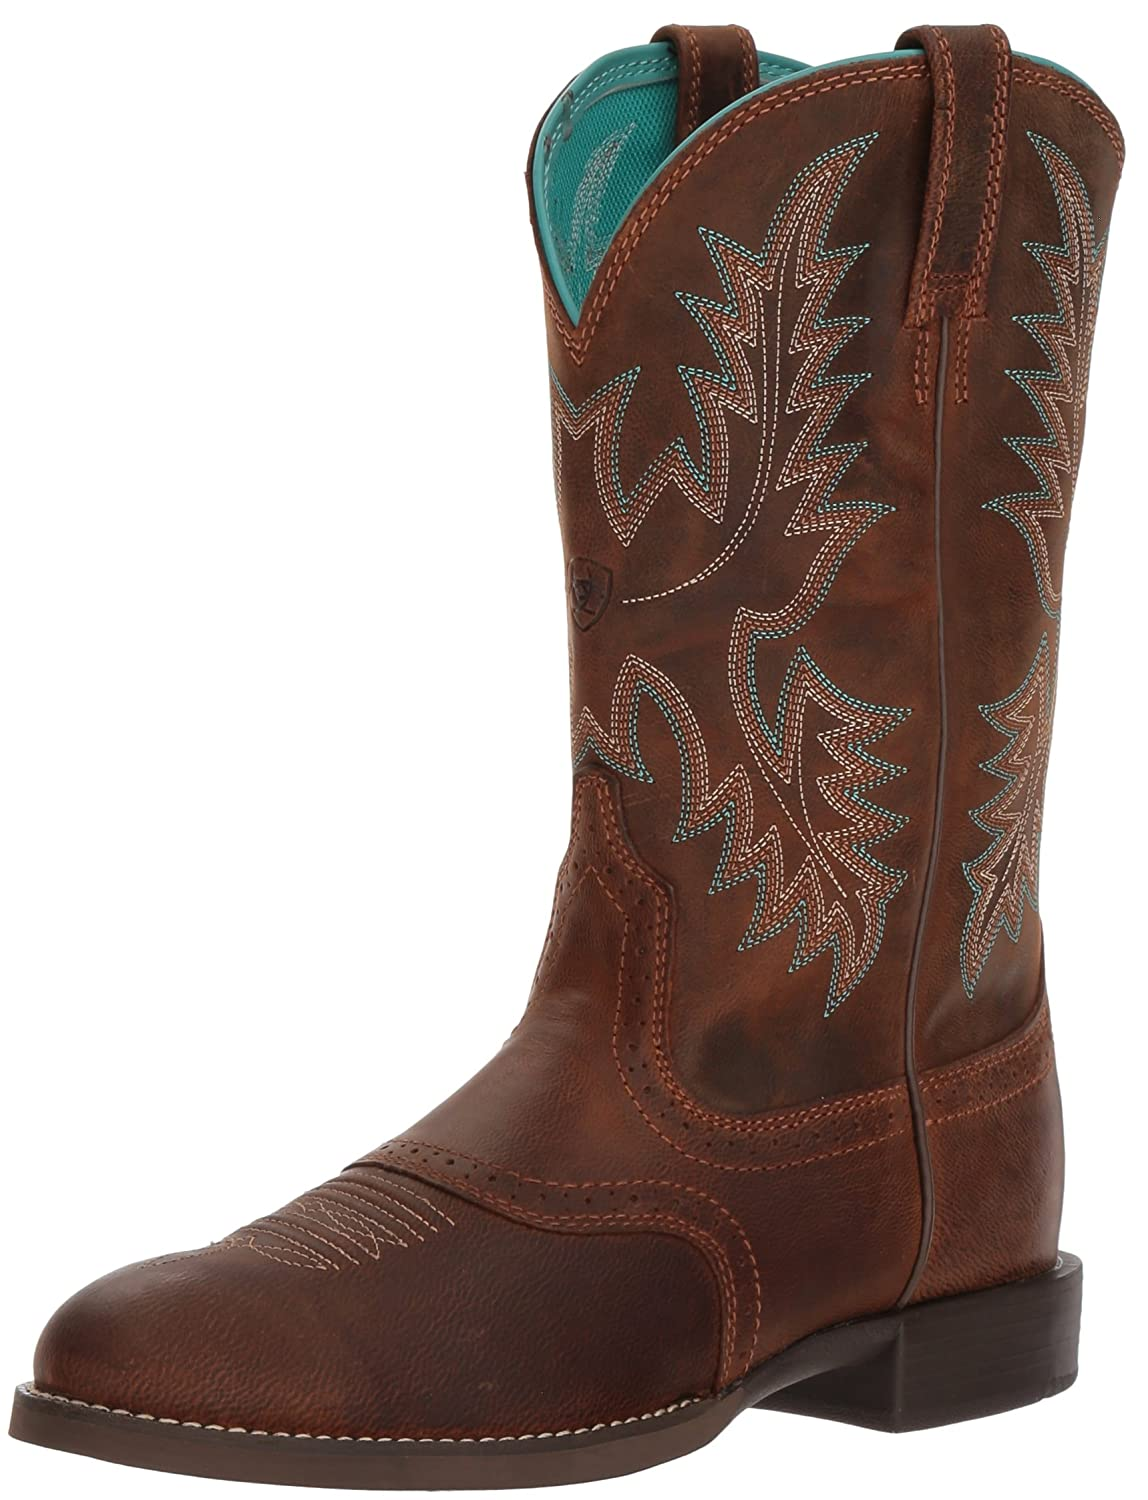 Ariat Women's Heritage Stockman Western Boot B076RNFQ4X 7.5 C US|Sassy Brown